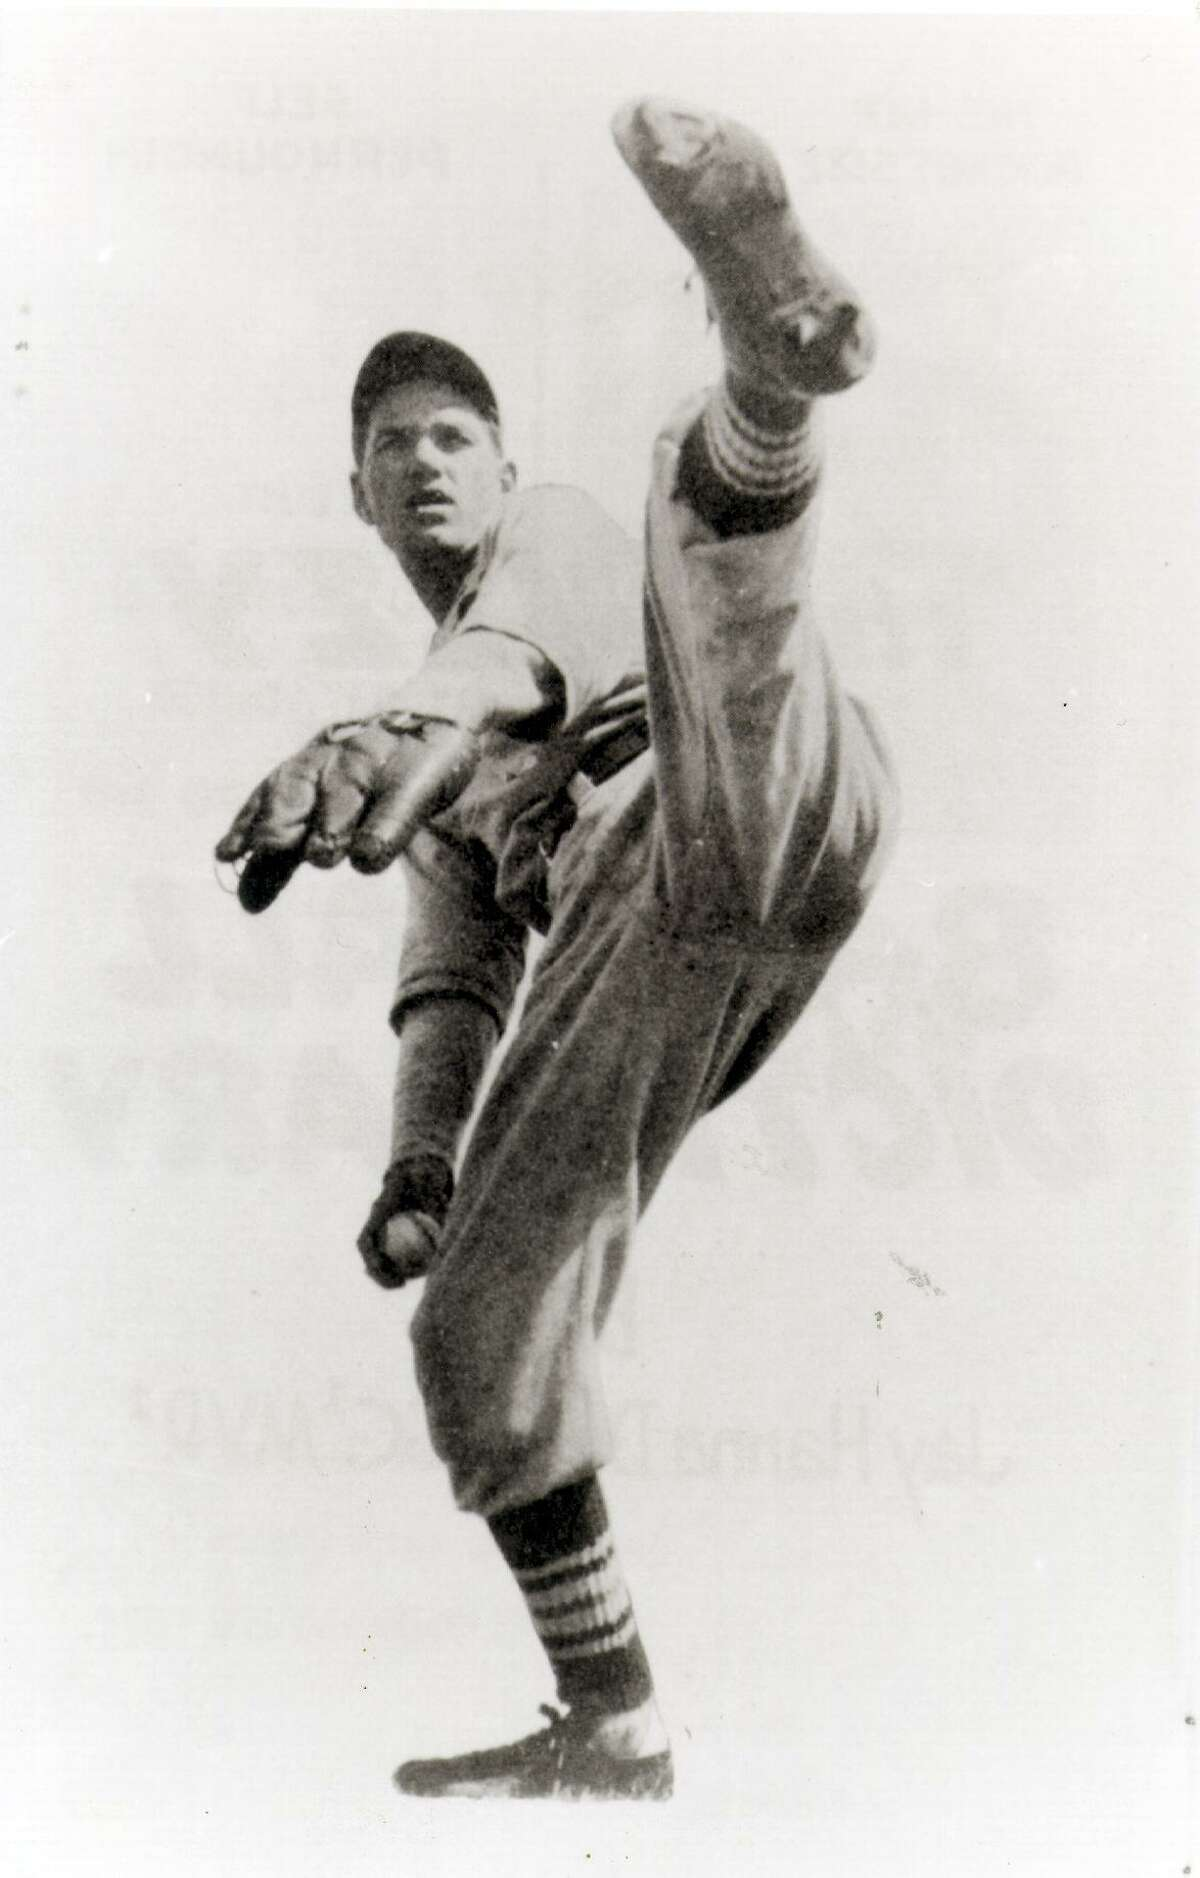 """St. Louis Cardinals star Jay Hanna """"Dizzy"""" Dean started his pitching career as a soldier at Fort Sam Houston, where he played for the Post Laundry team. After leaving the Army in 1929, he played one season for San Antonio's premier amateur team, sponsored by the Public Service Co., an ancestor of City Public Service."""